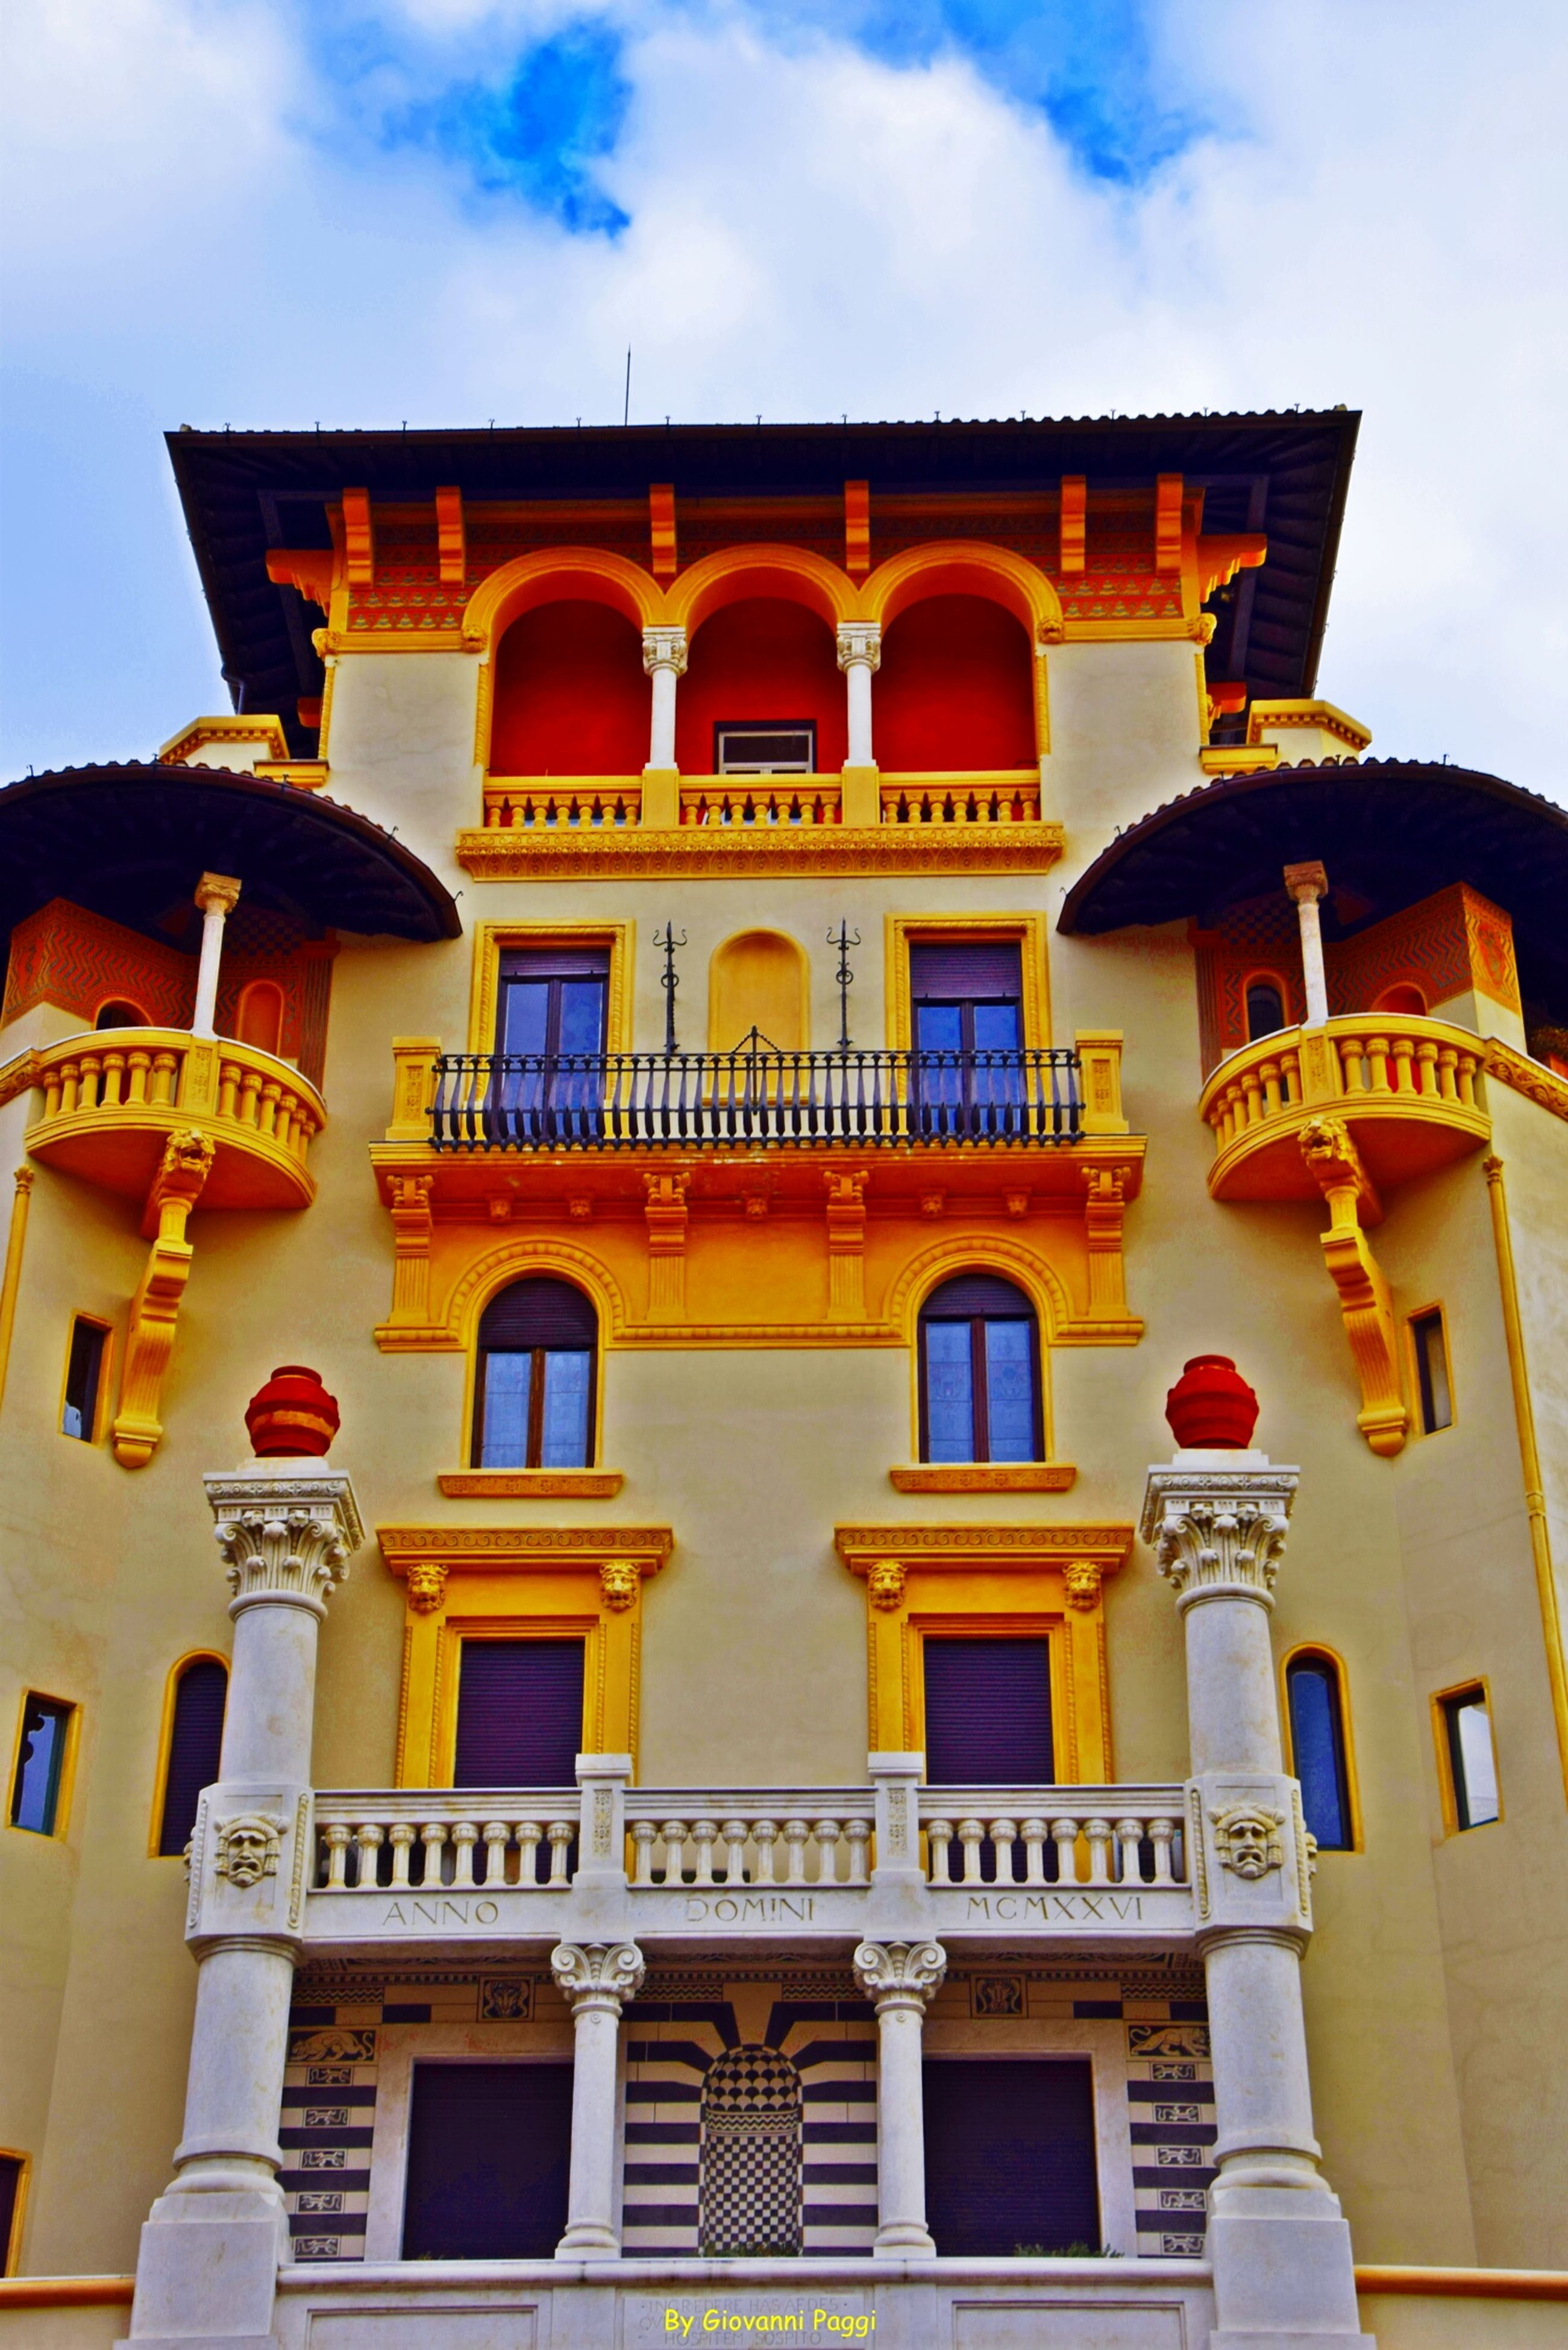 architecture, building exterior, built structure, low angle view, window, sky, building, arch, facade, balcony, residential building, yellow, residential structure, cloud - sky, outdoors, day, cloud, no people, sunlight, city